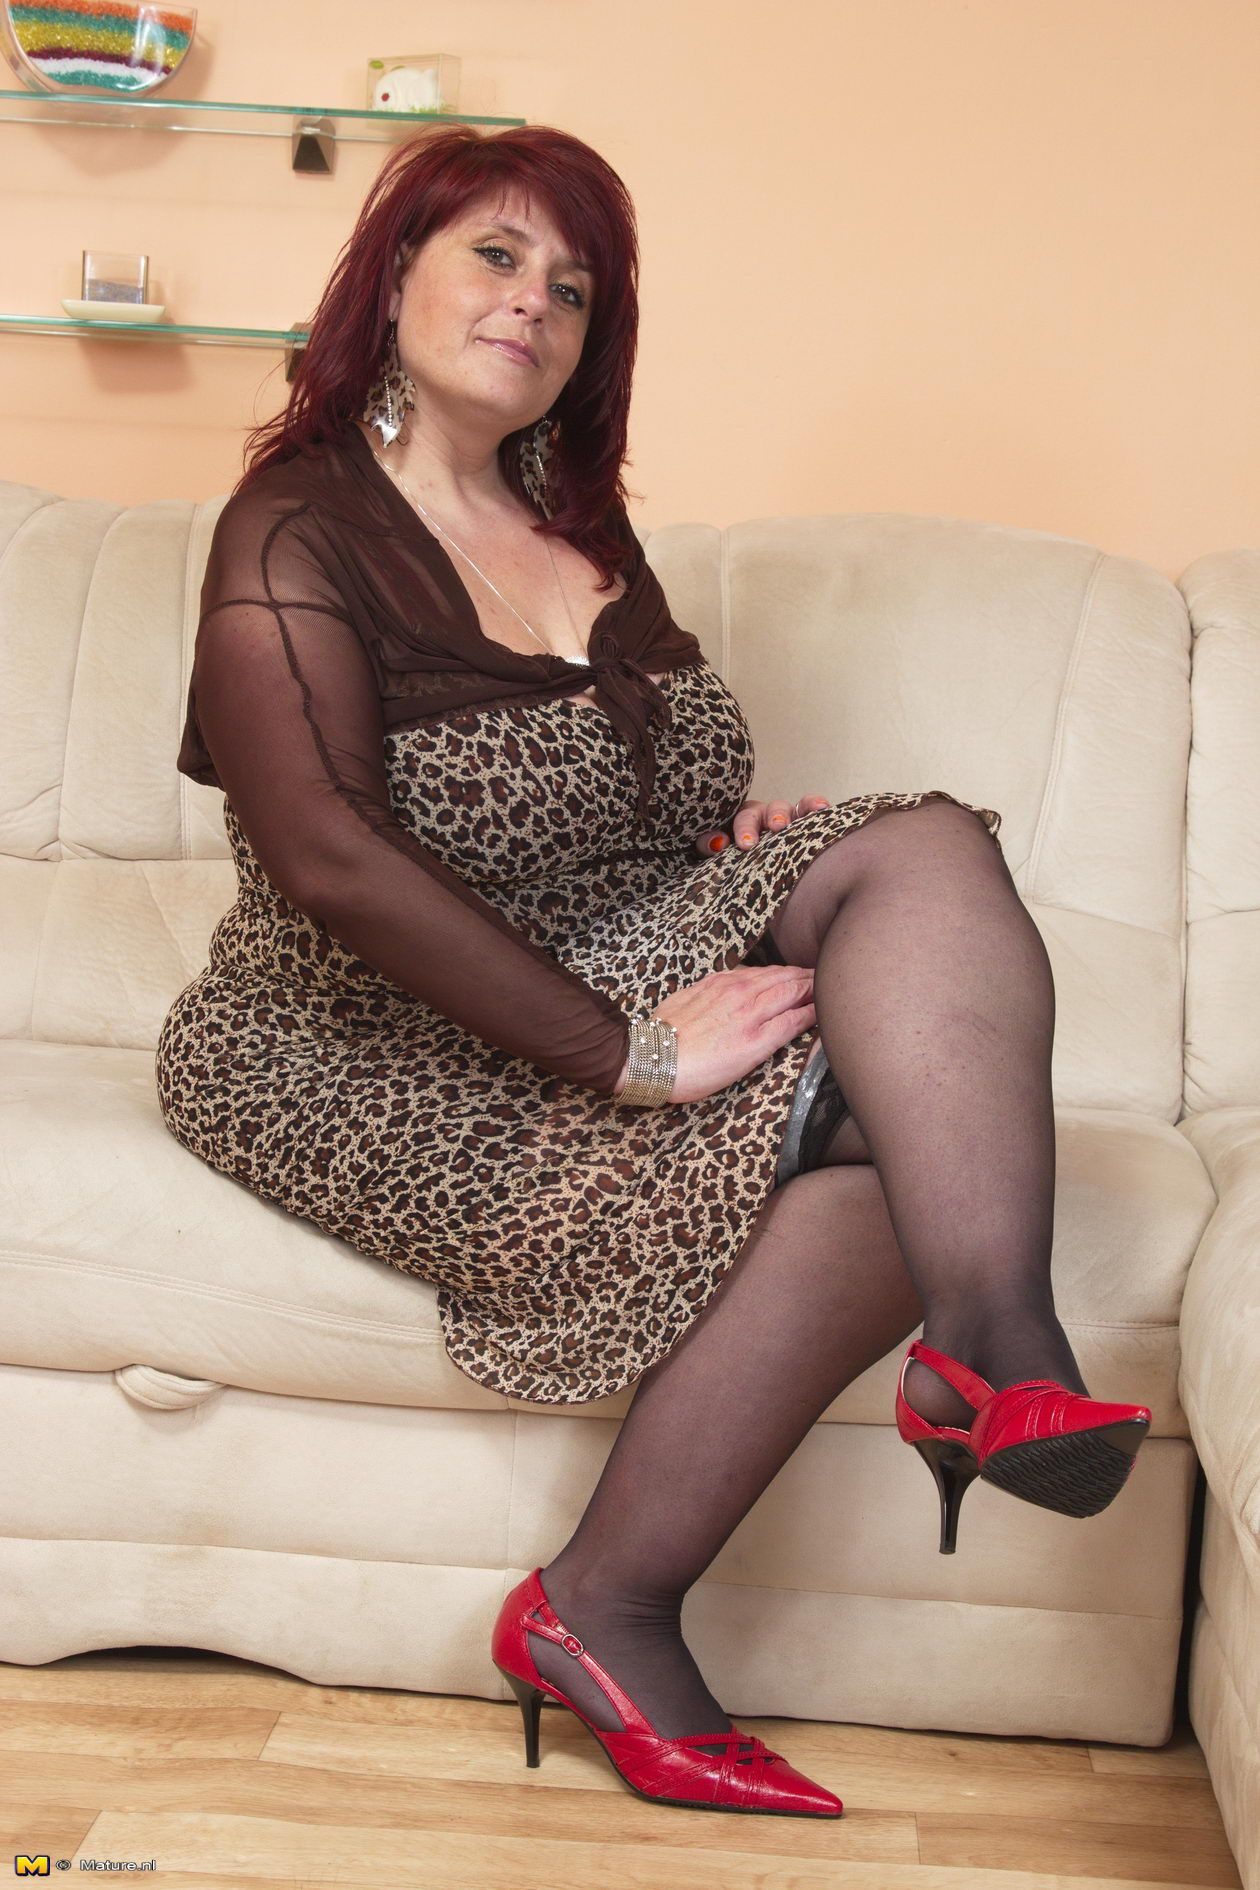 bbw mature | rosemary's | pinterest | real women, curves and curvy